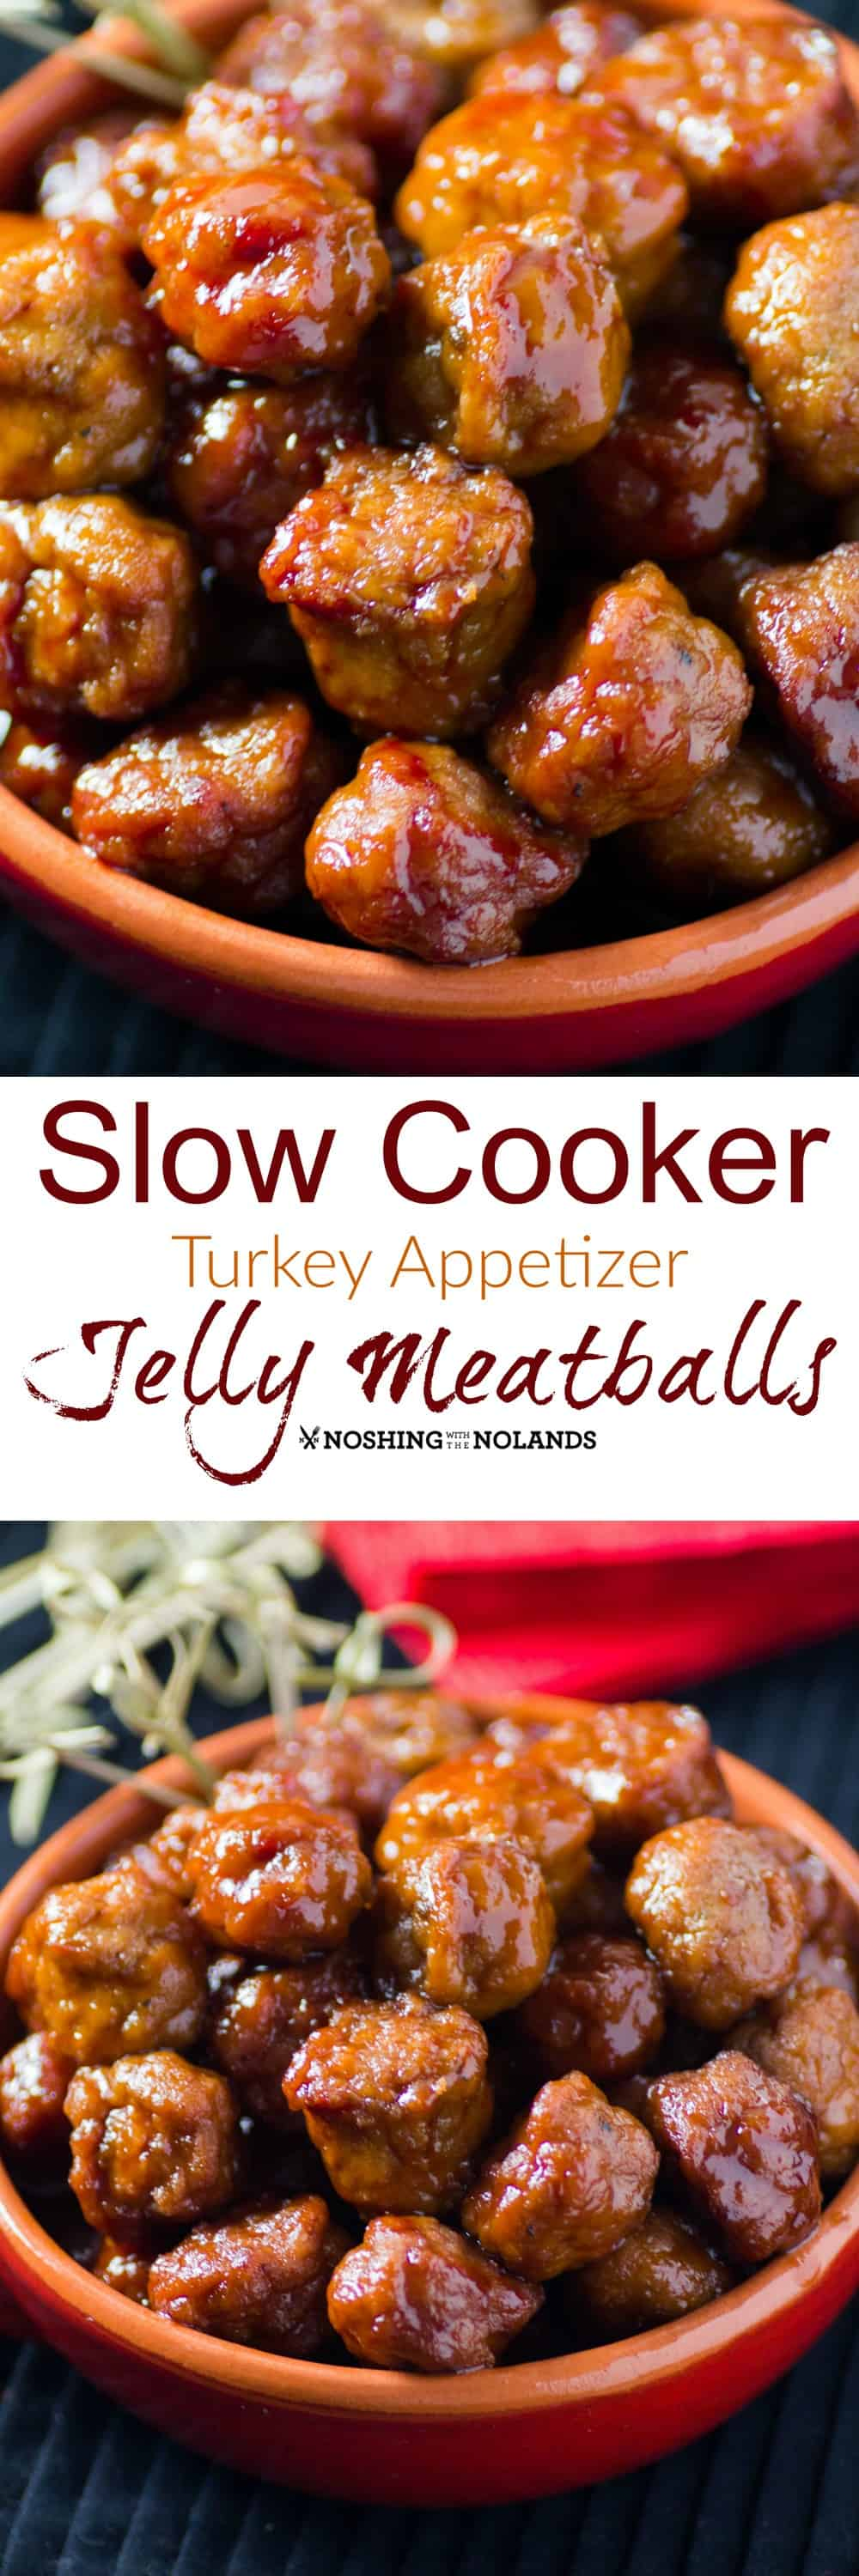 Slow cooker turkey appetizer jelly meatballs sundaysupper for Meatball appetizer recipe crockpot